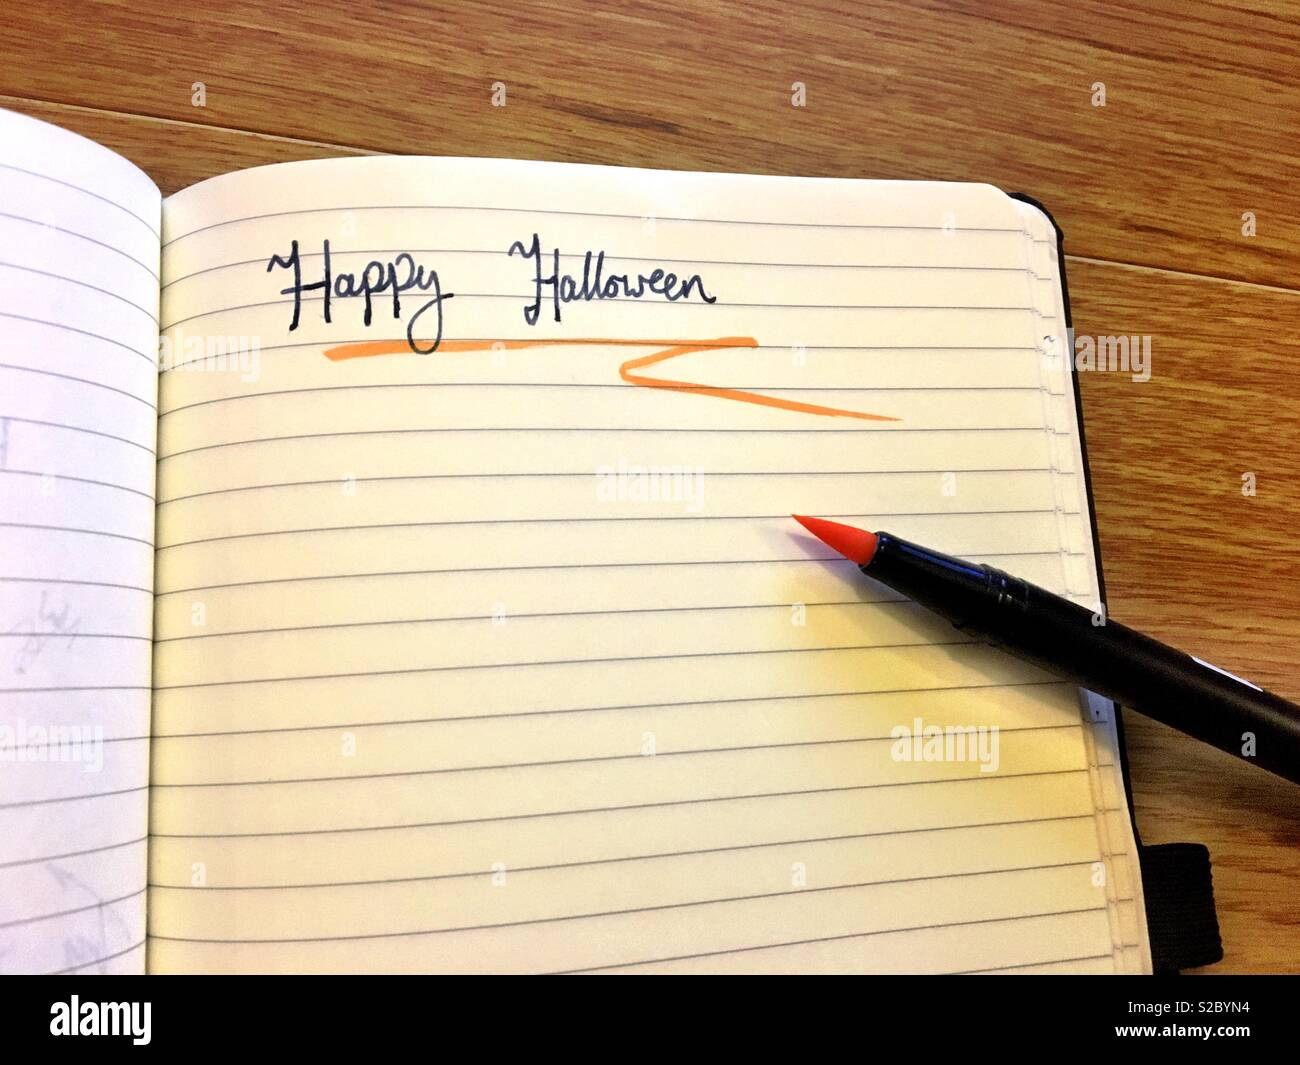 Happy Halloween hand written in a lined notebook with a blue ink fountain pen underlined with an orange feathered brush pen - Stock Image